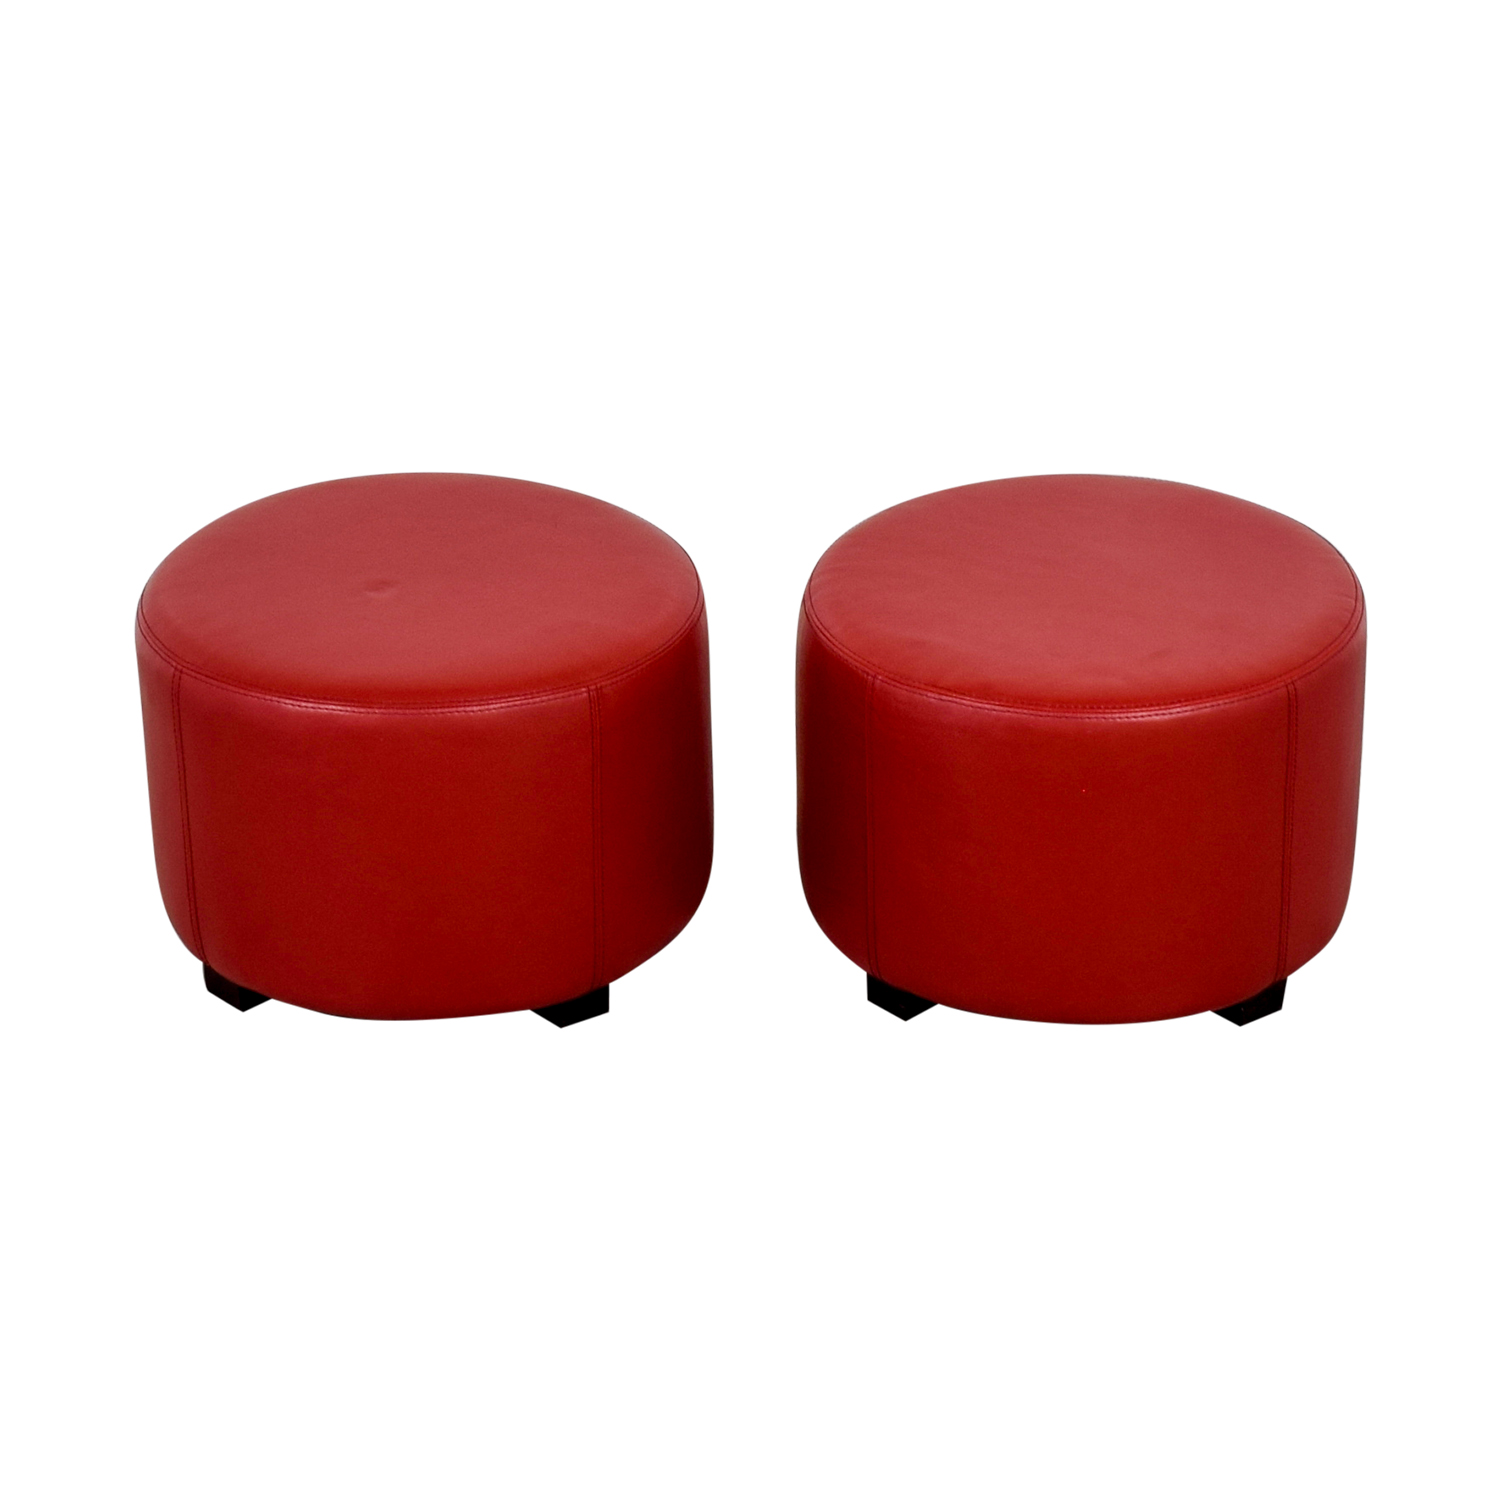 Round Red Leather Ottomans nj